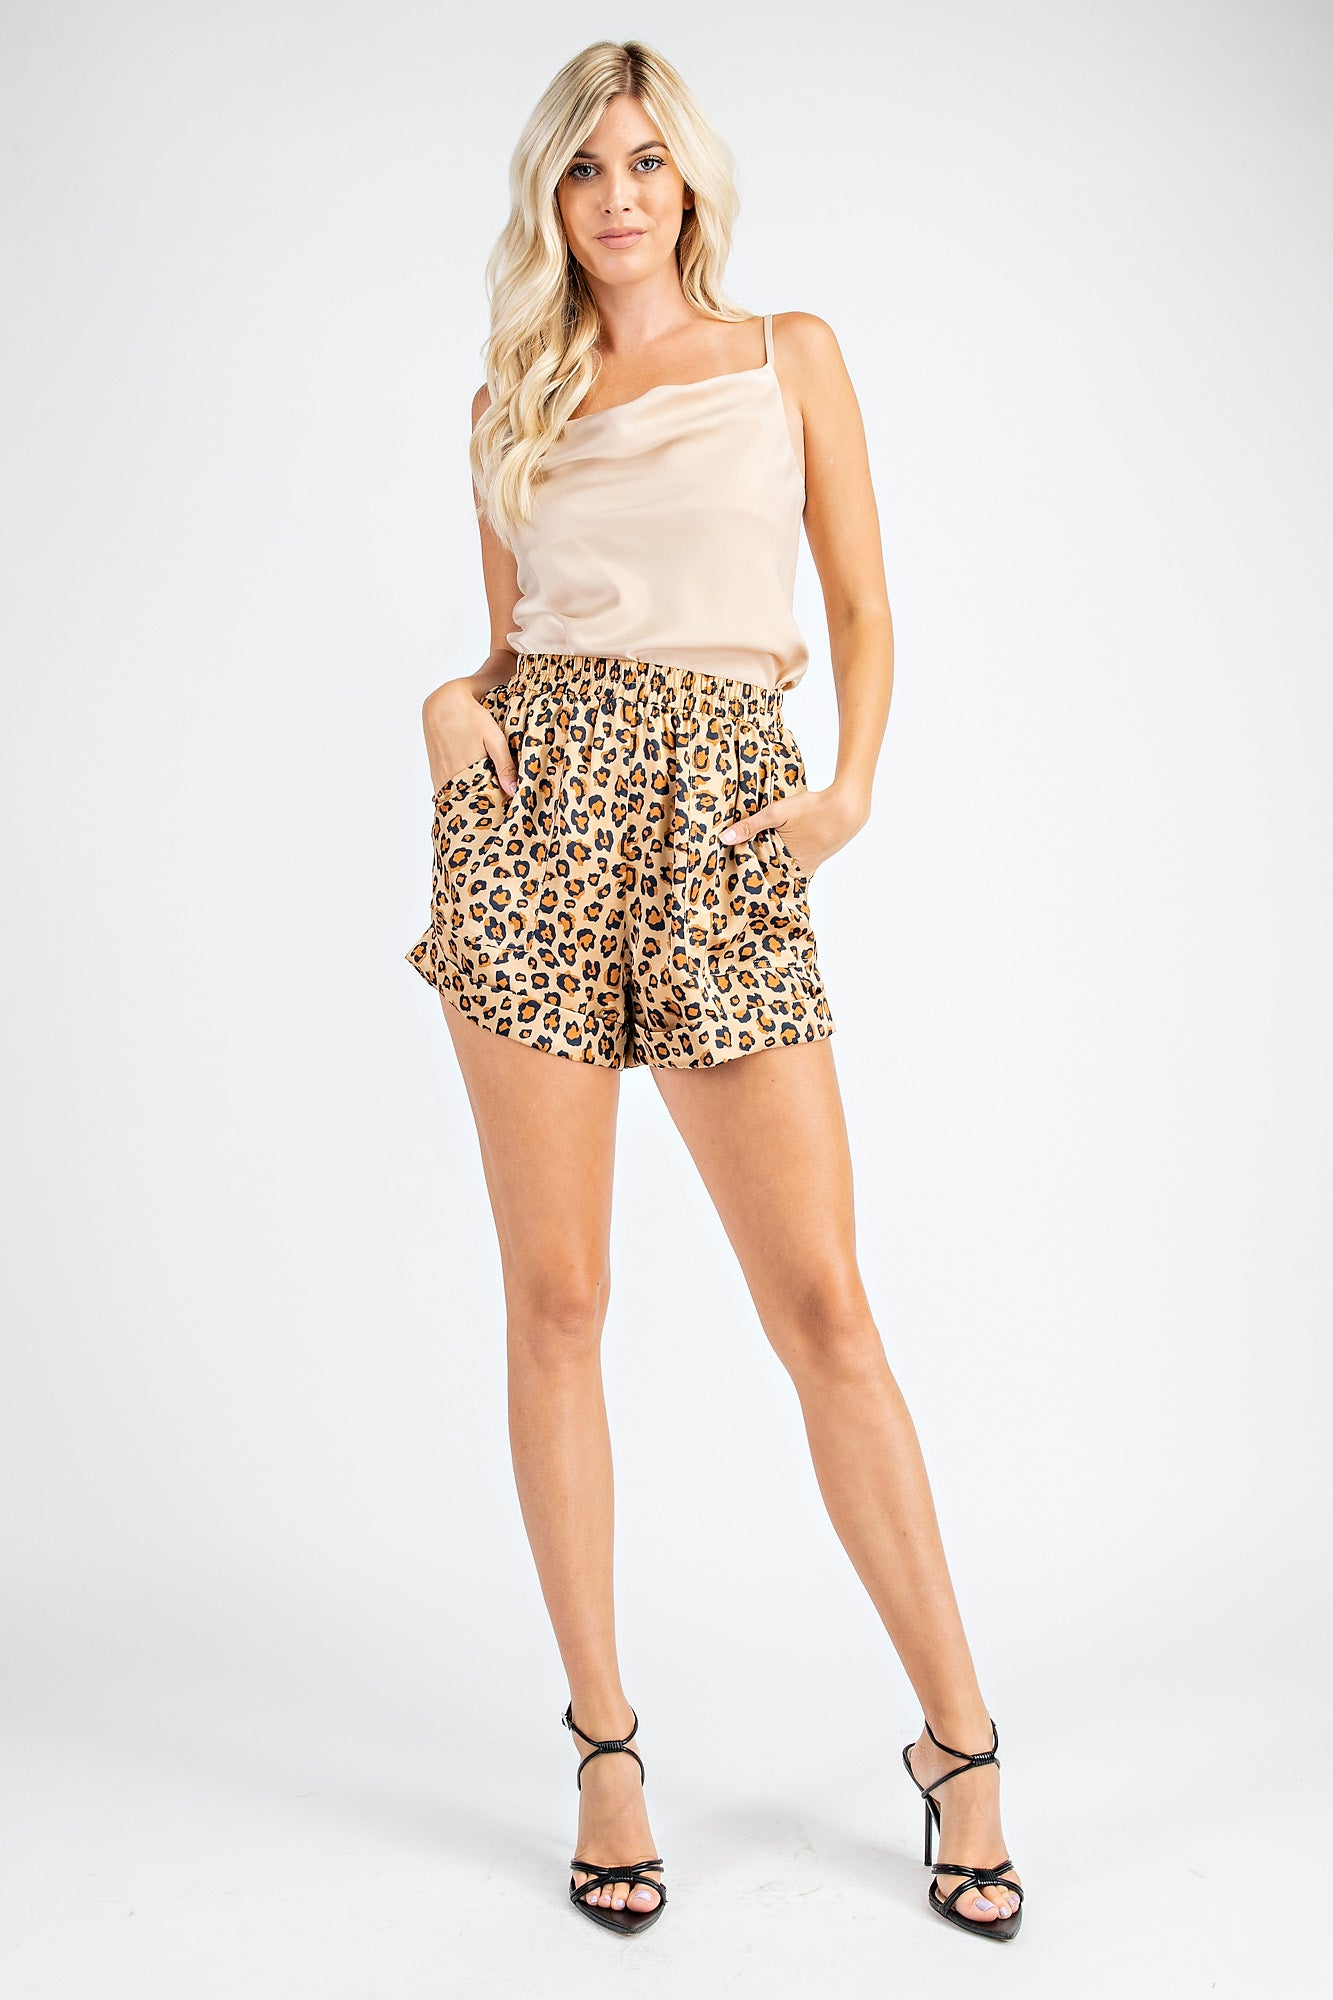 Champagne Satin Cowl Neck Cami with cheetah shorts for a saturday night.